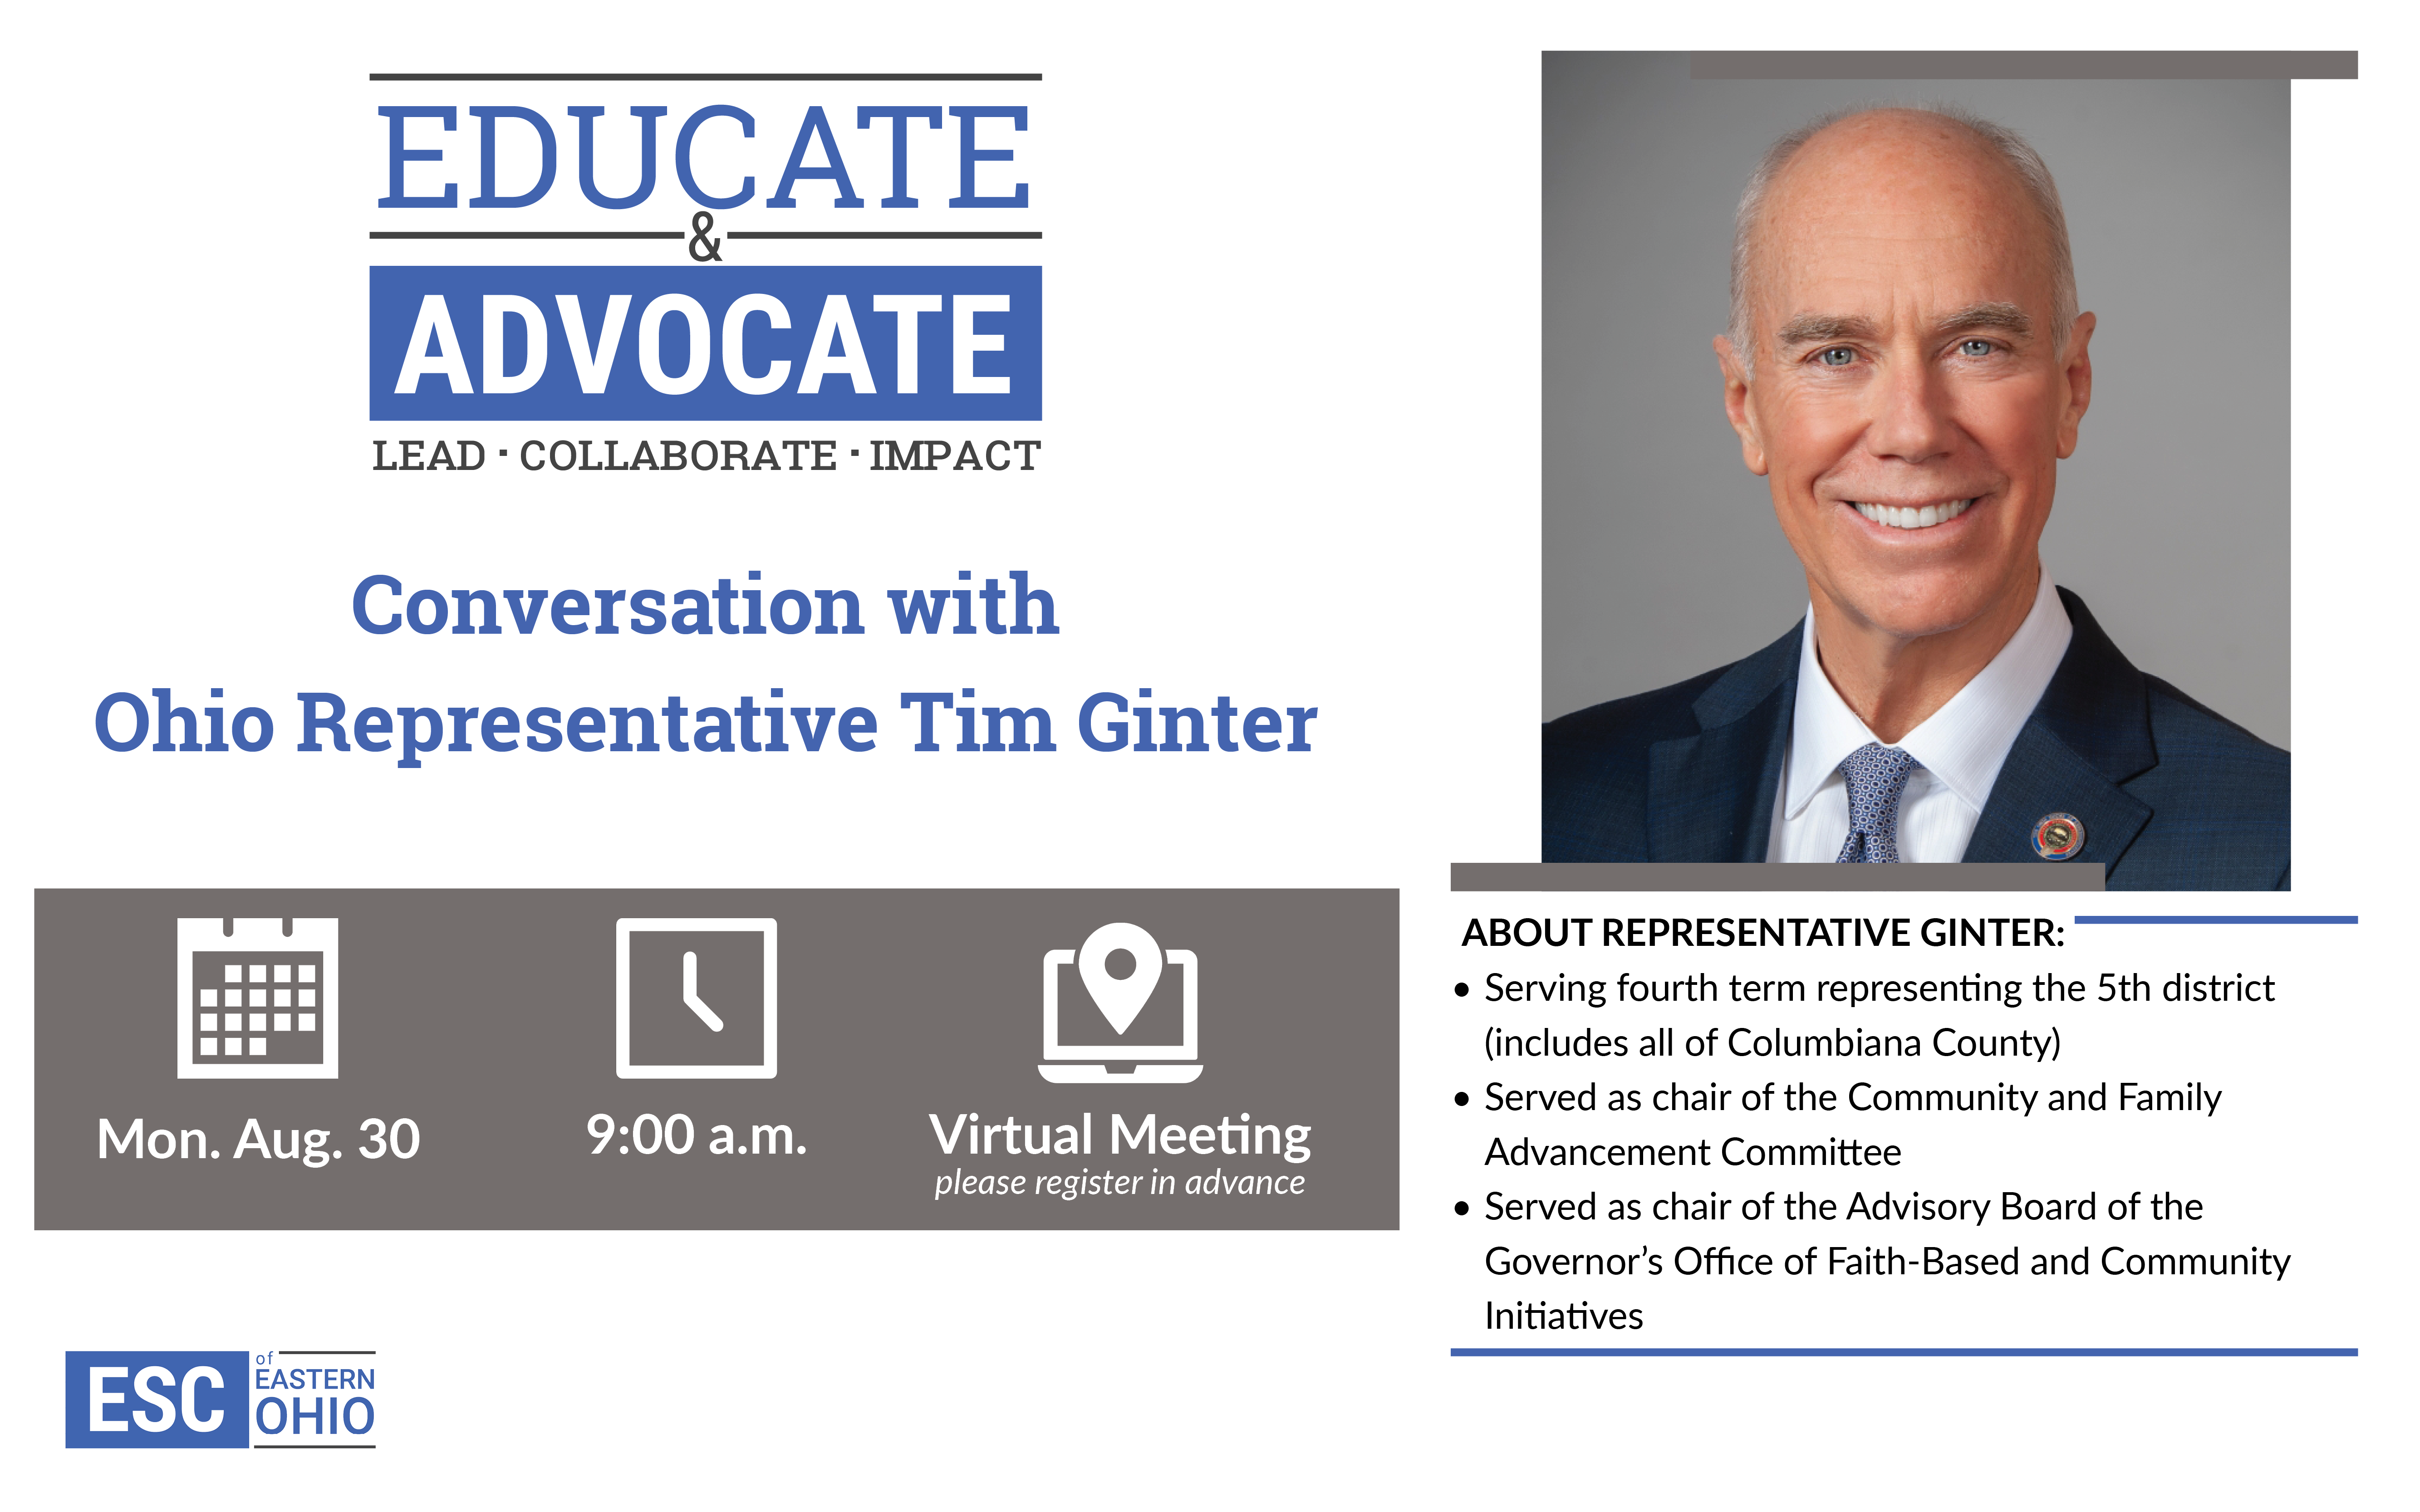 Educate and Advocate with Tim Ginter